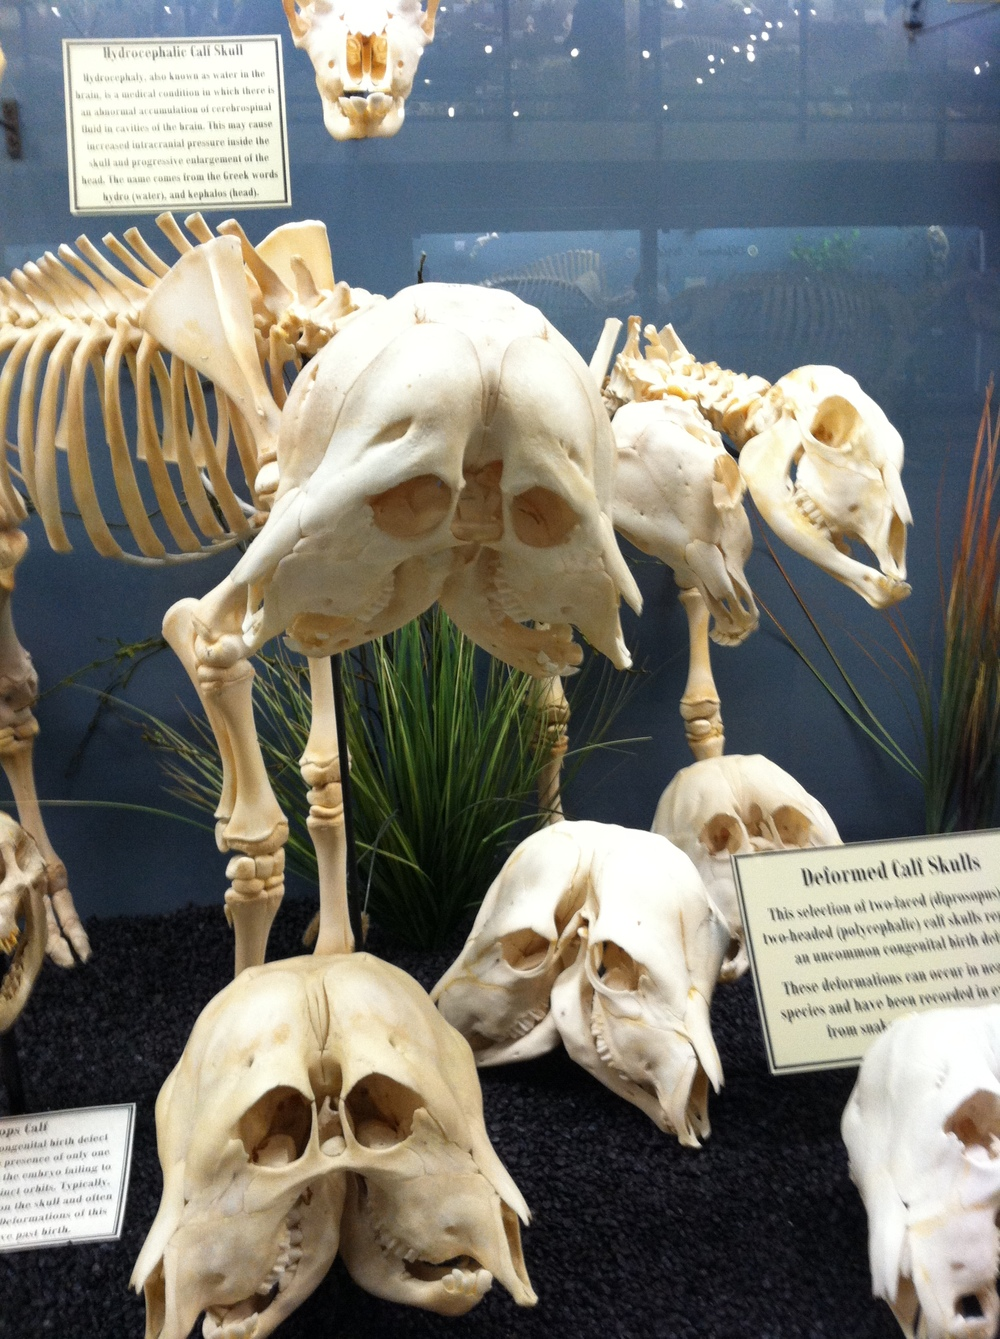 Calf scull deformaties!